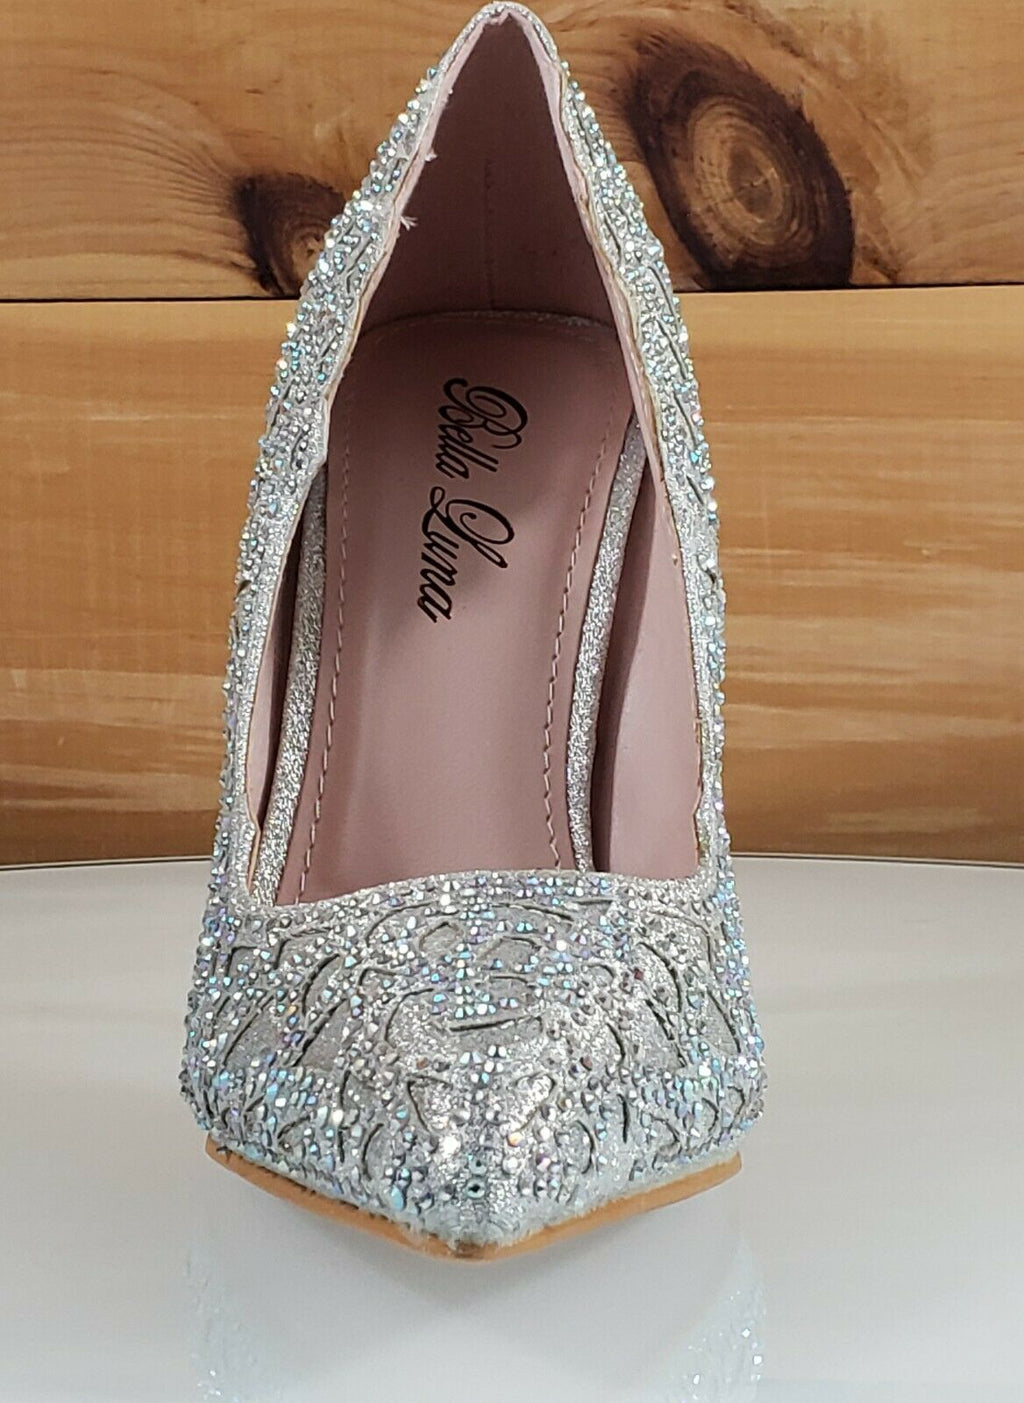 "Bella Luna Sofia Silver Cut Out Glitter Fabric Jeweled 4.5"" High Heel Pump Shoe"